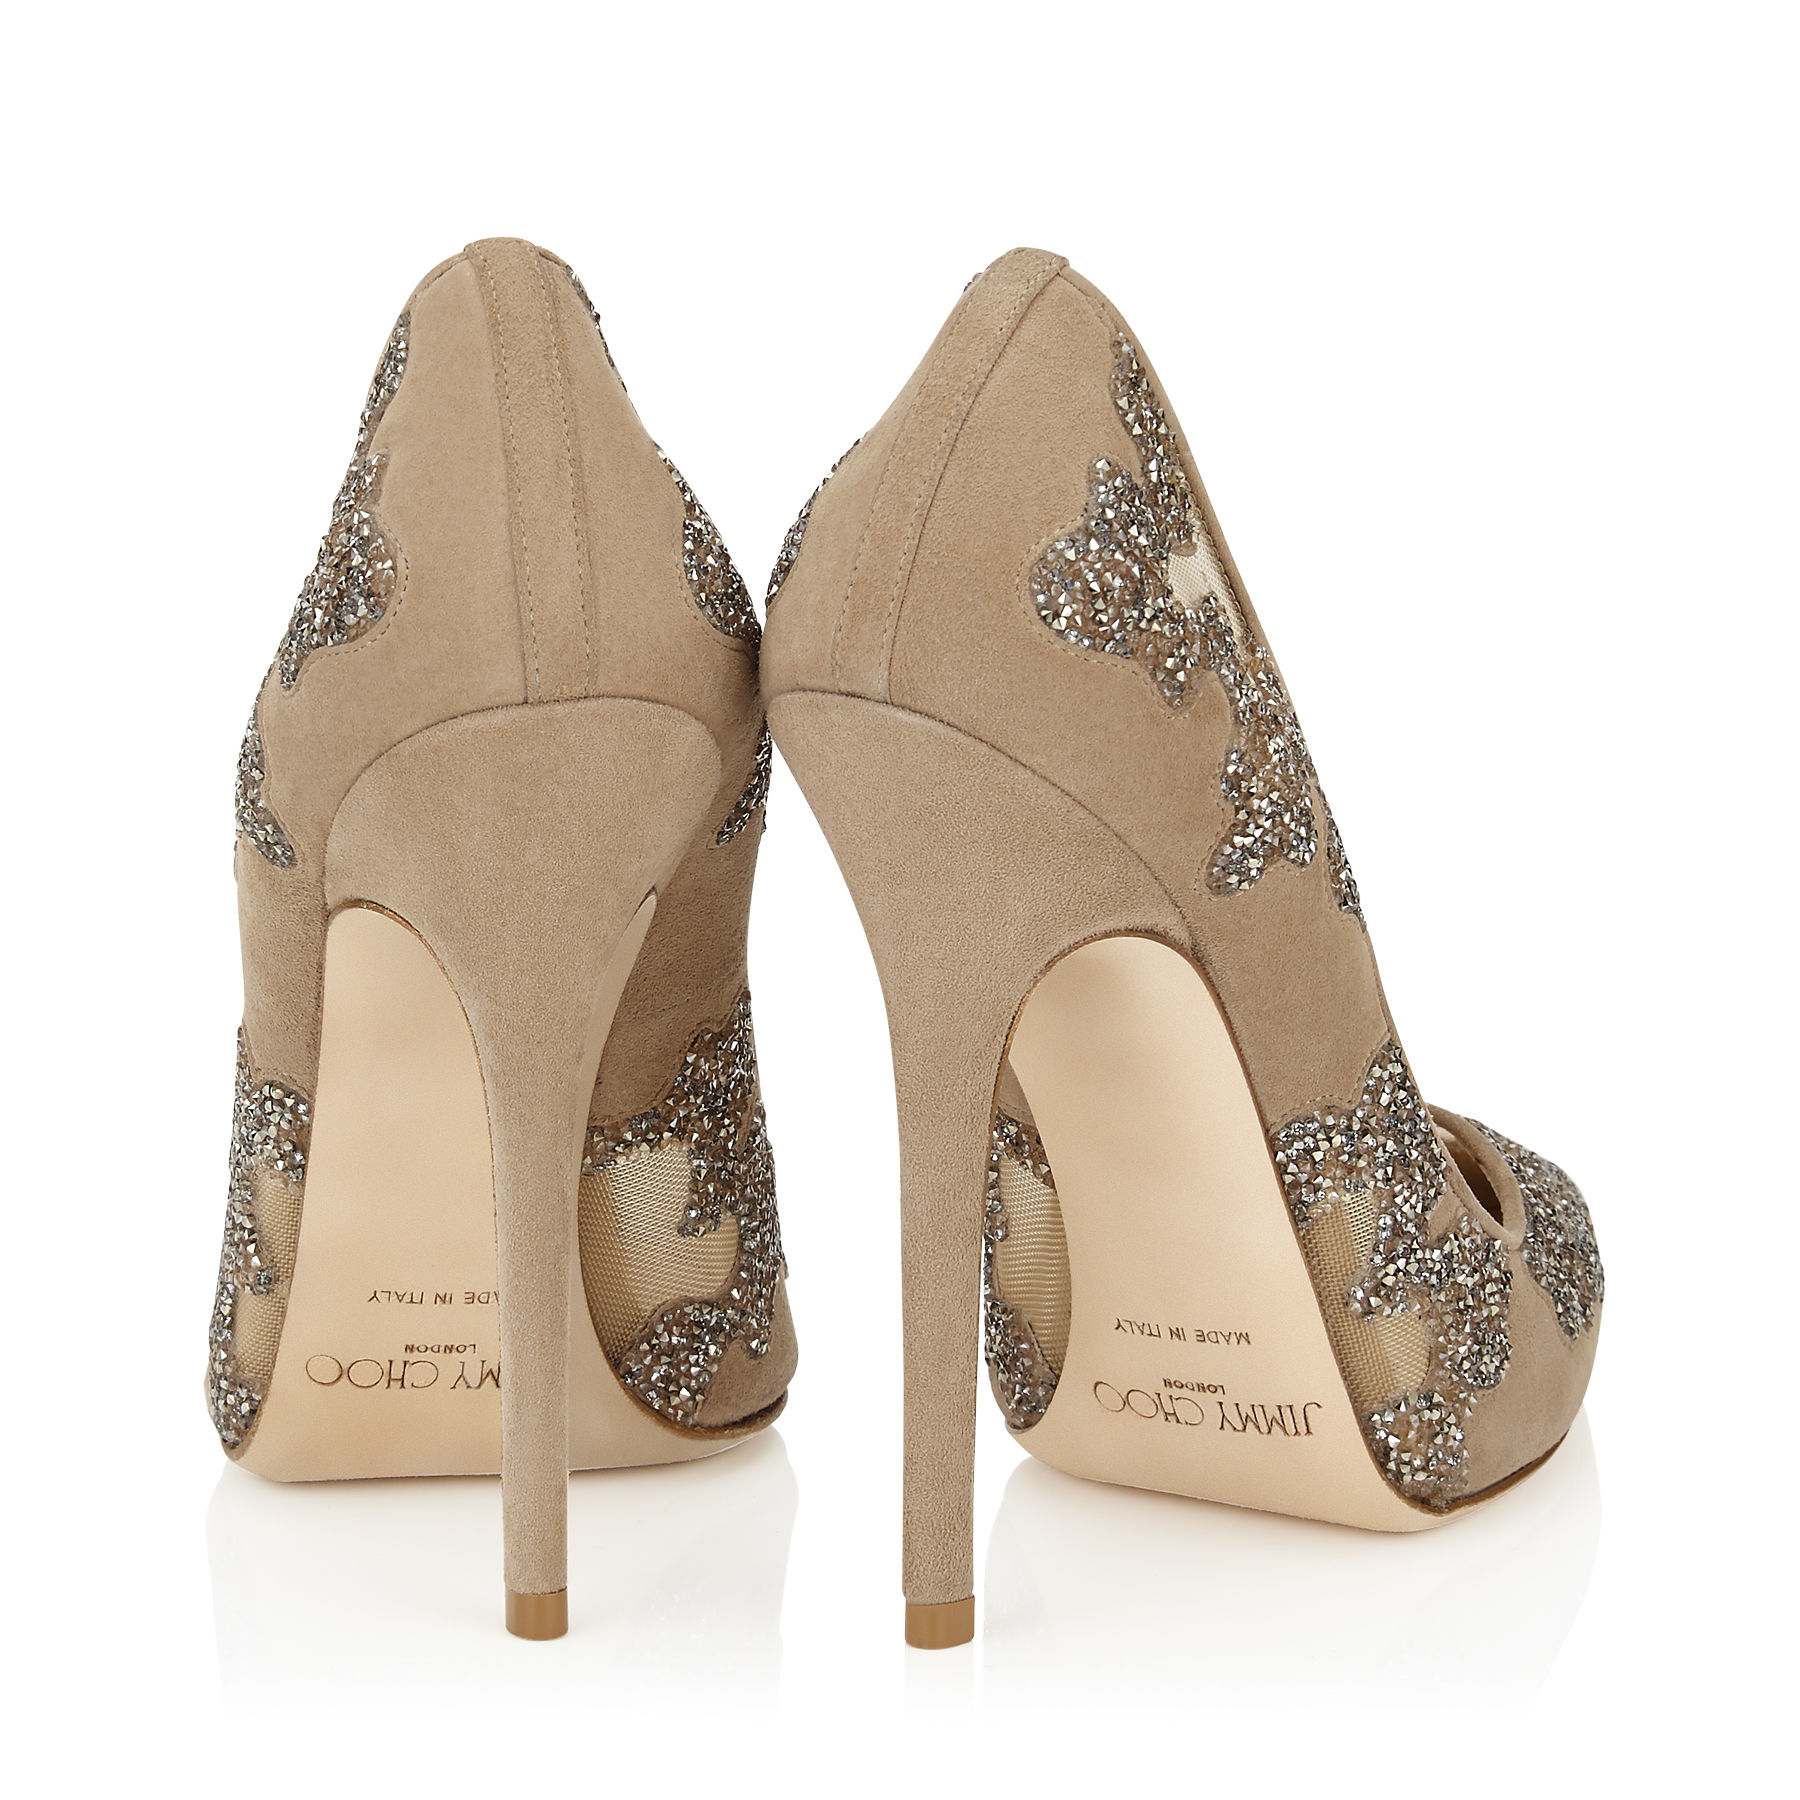 JIMMY CHOO Romy 100 satin and mesh courts Nude - K8437